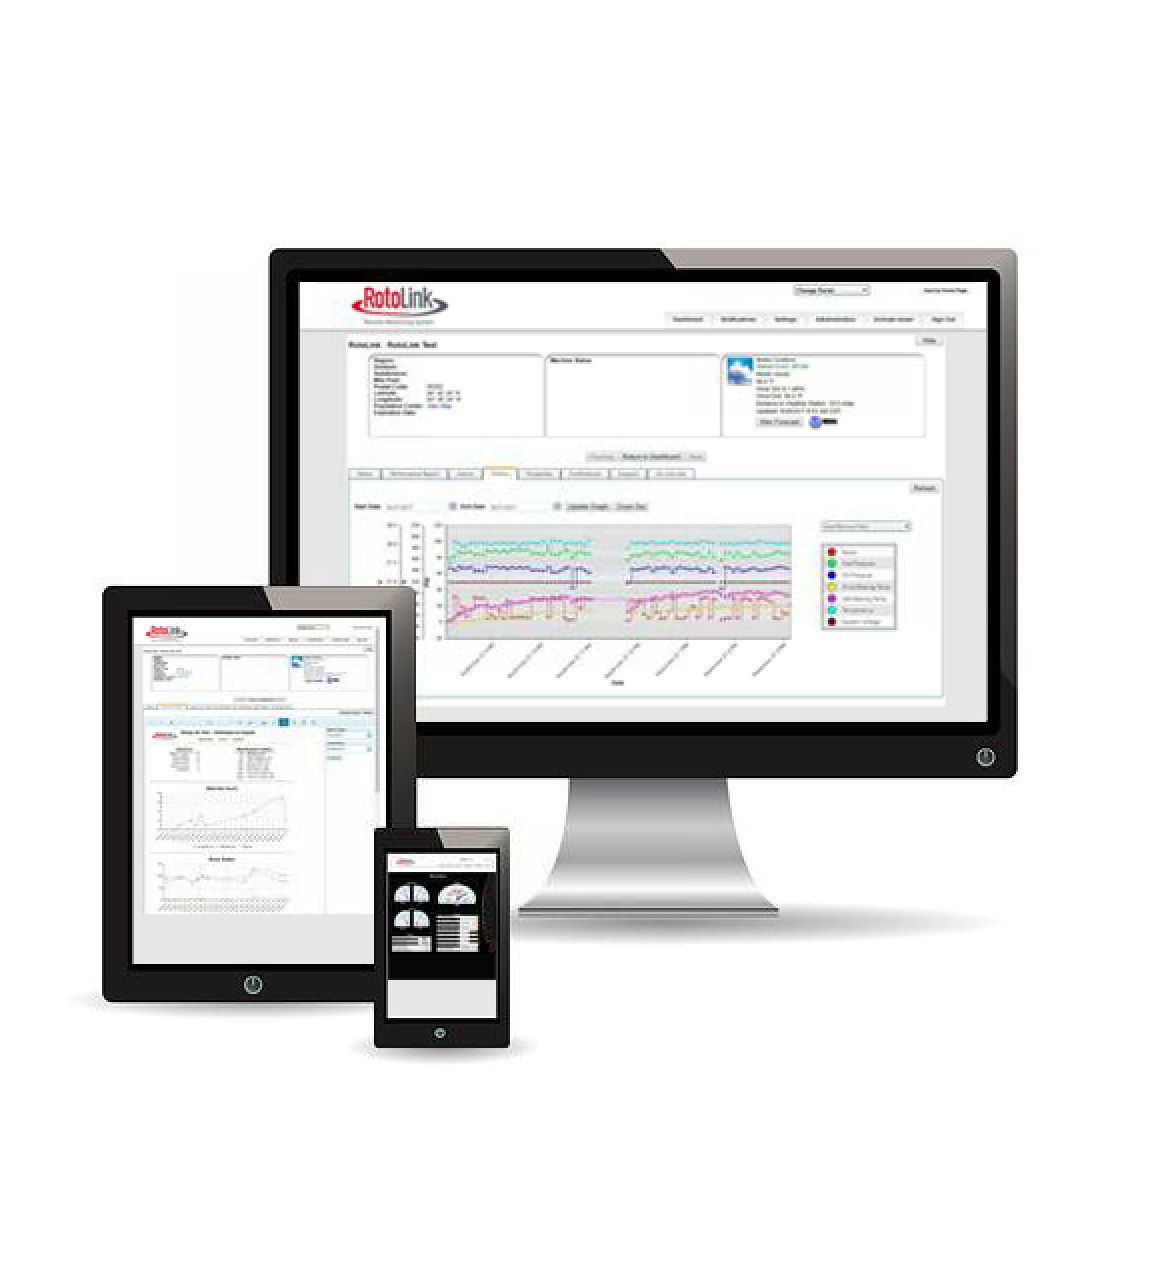 The RotoLink 2nd generation remote monitoring system from Rotochopper allows a live connection between the machine and customer support.